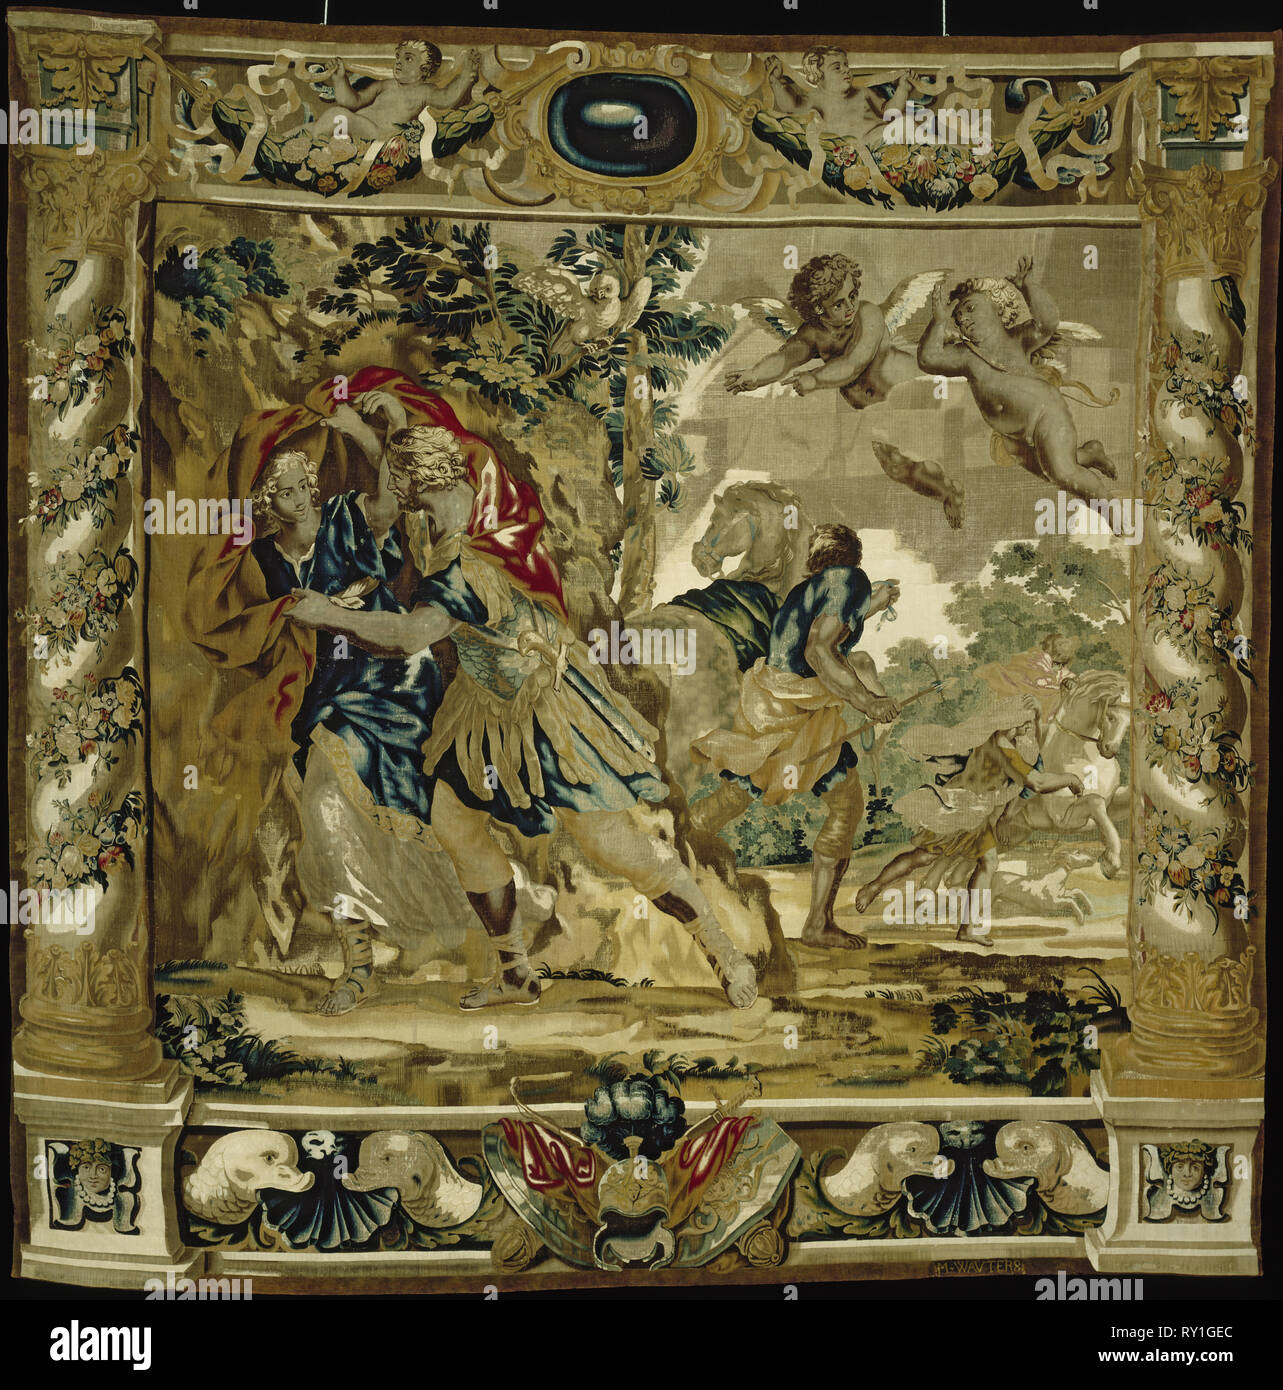 Dido and Aeneas seek shelter from a storm, 1679. Giovanni Francesco Romanelli (Italian, 1610-1662), Michael Wauters (Flemish, 1679). Tapestry weave: silk and wool; overall: 416.4 x 418.8 cm (163 15/16 x 164 7/8 in - Stock Image